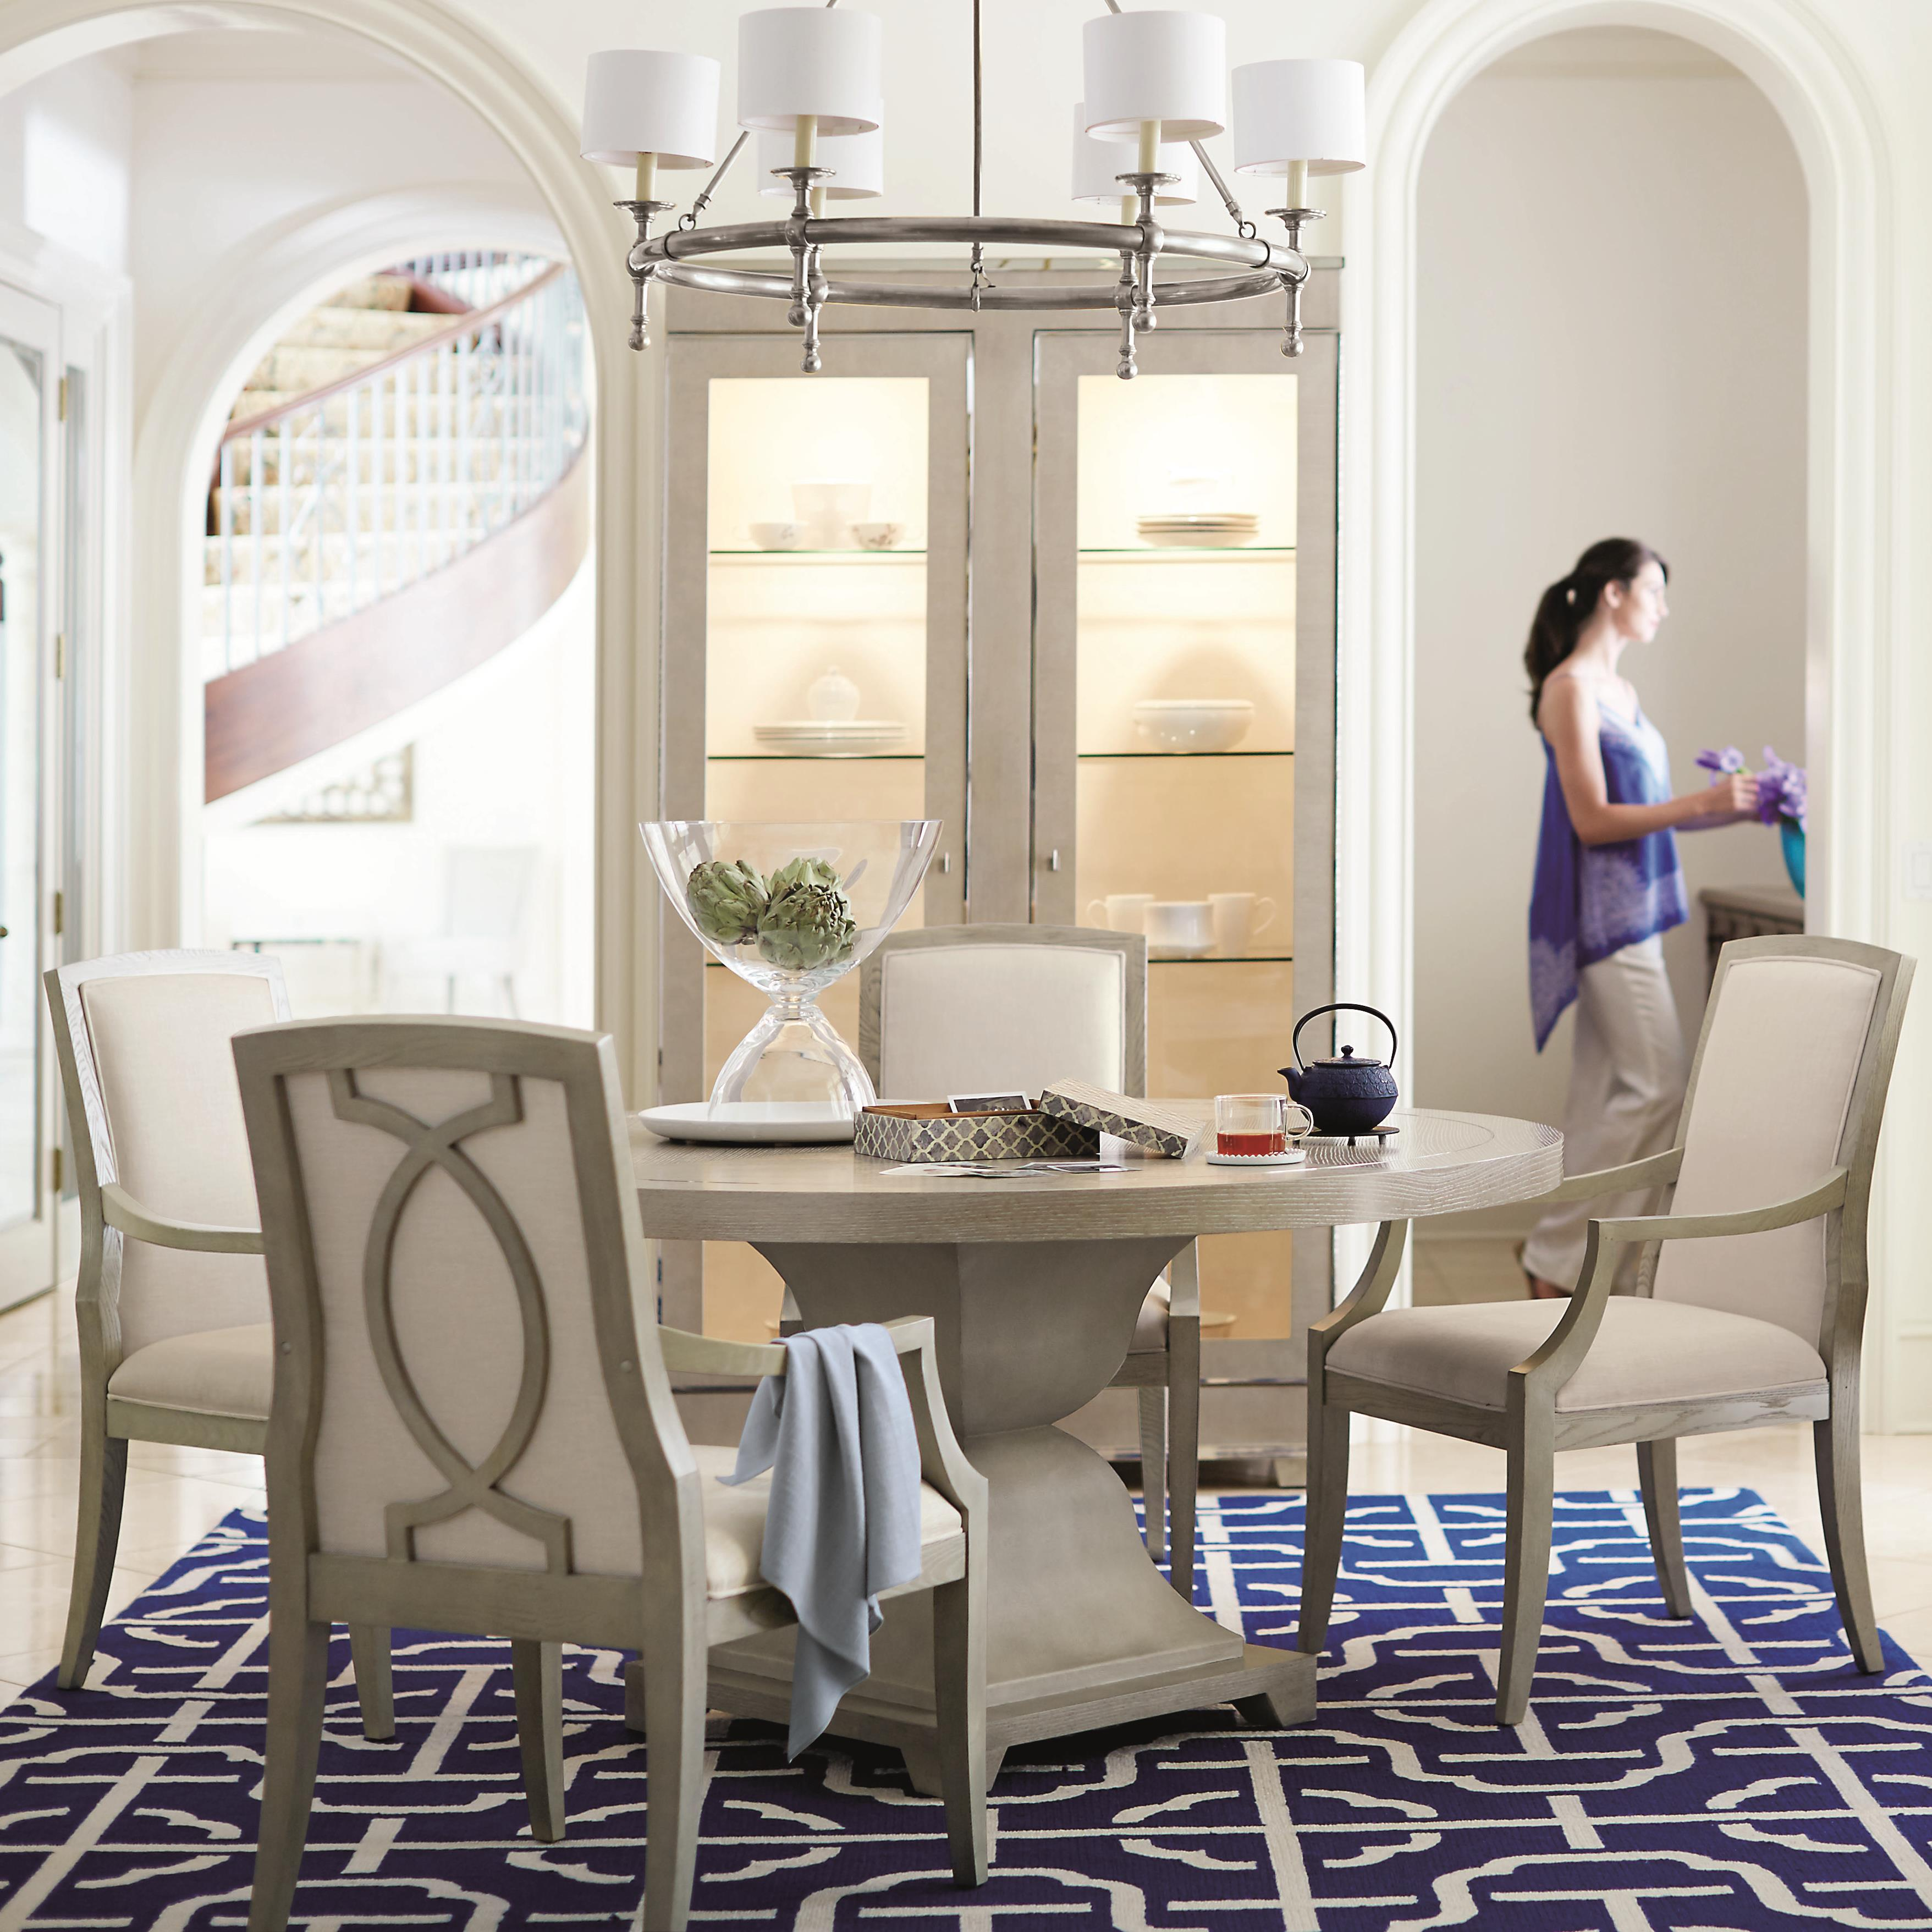 Magnificent Bernhardt Criteria 5 Piece Dining Set With Upholstered Arm Interior Design Ideas Ghosoteloinfo